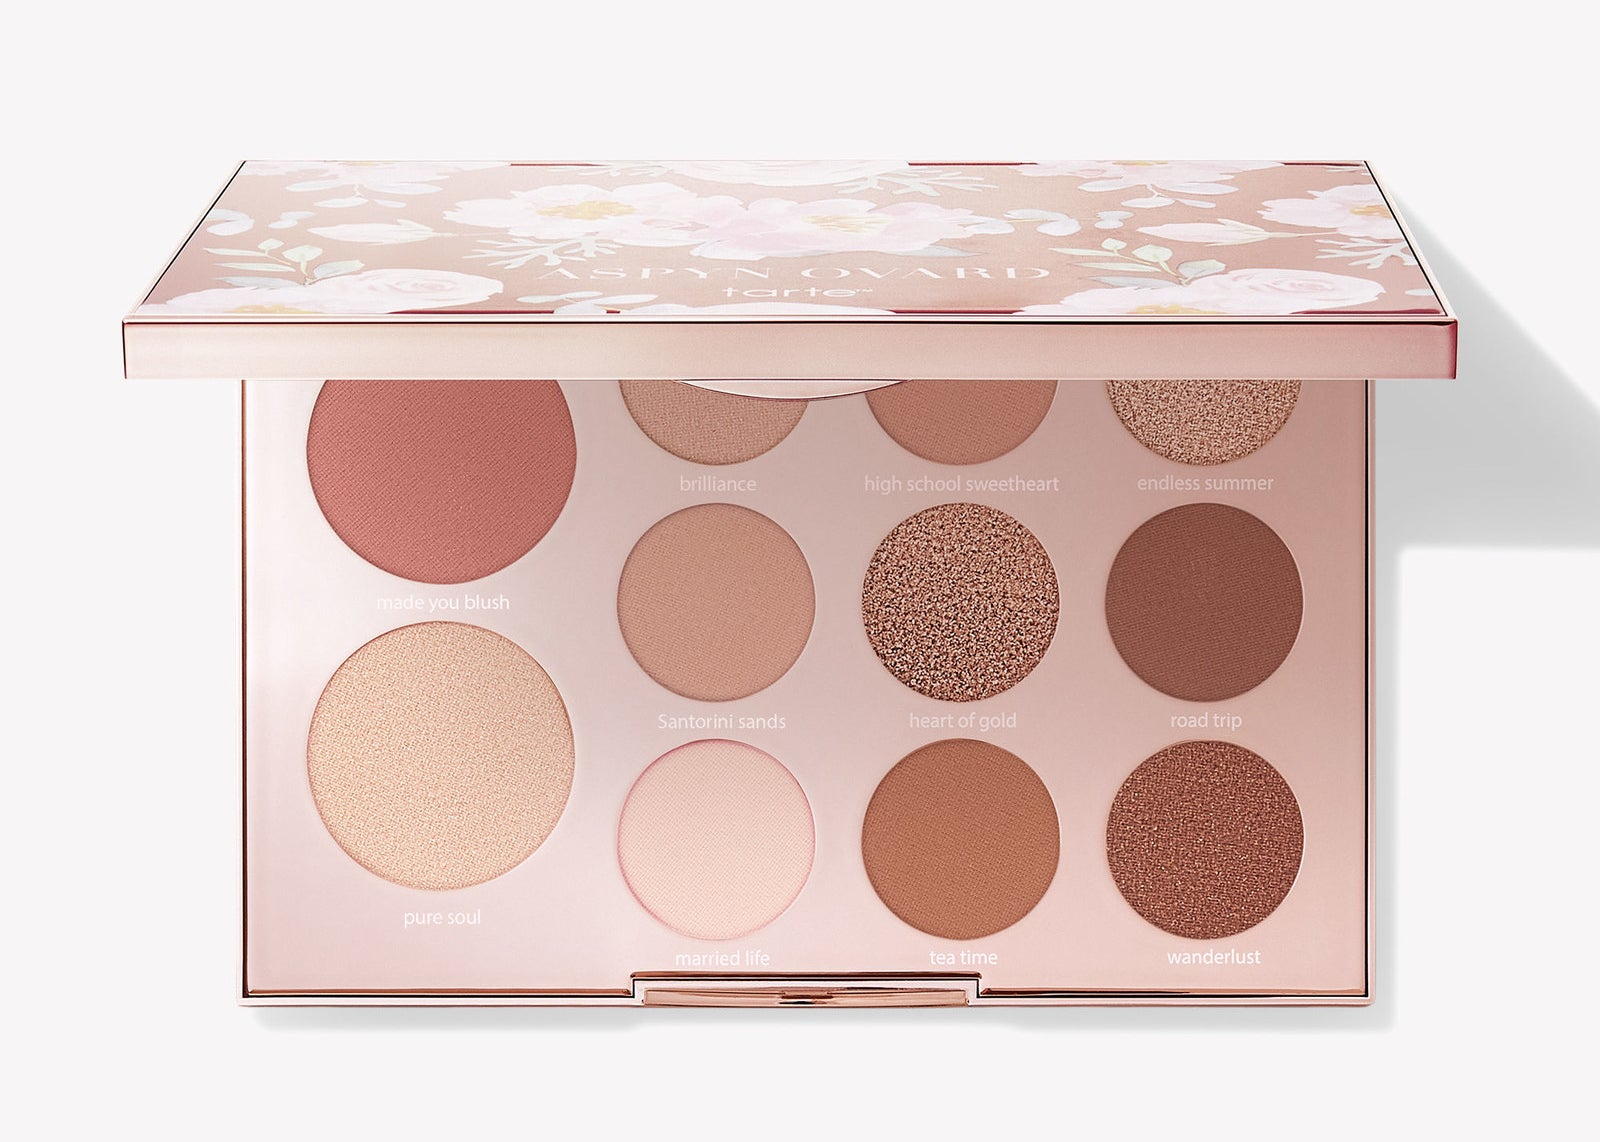 Enter promo code BESTIES at checkout.Get this eyeshadow palette here.